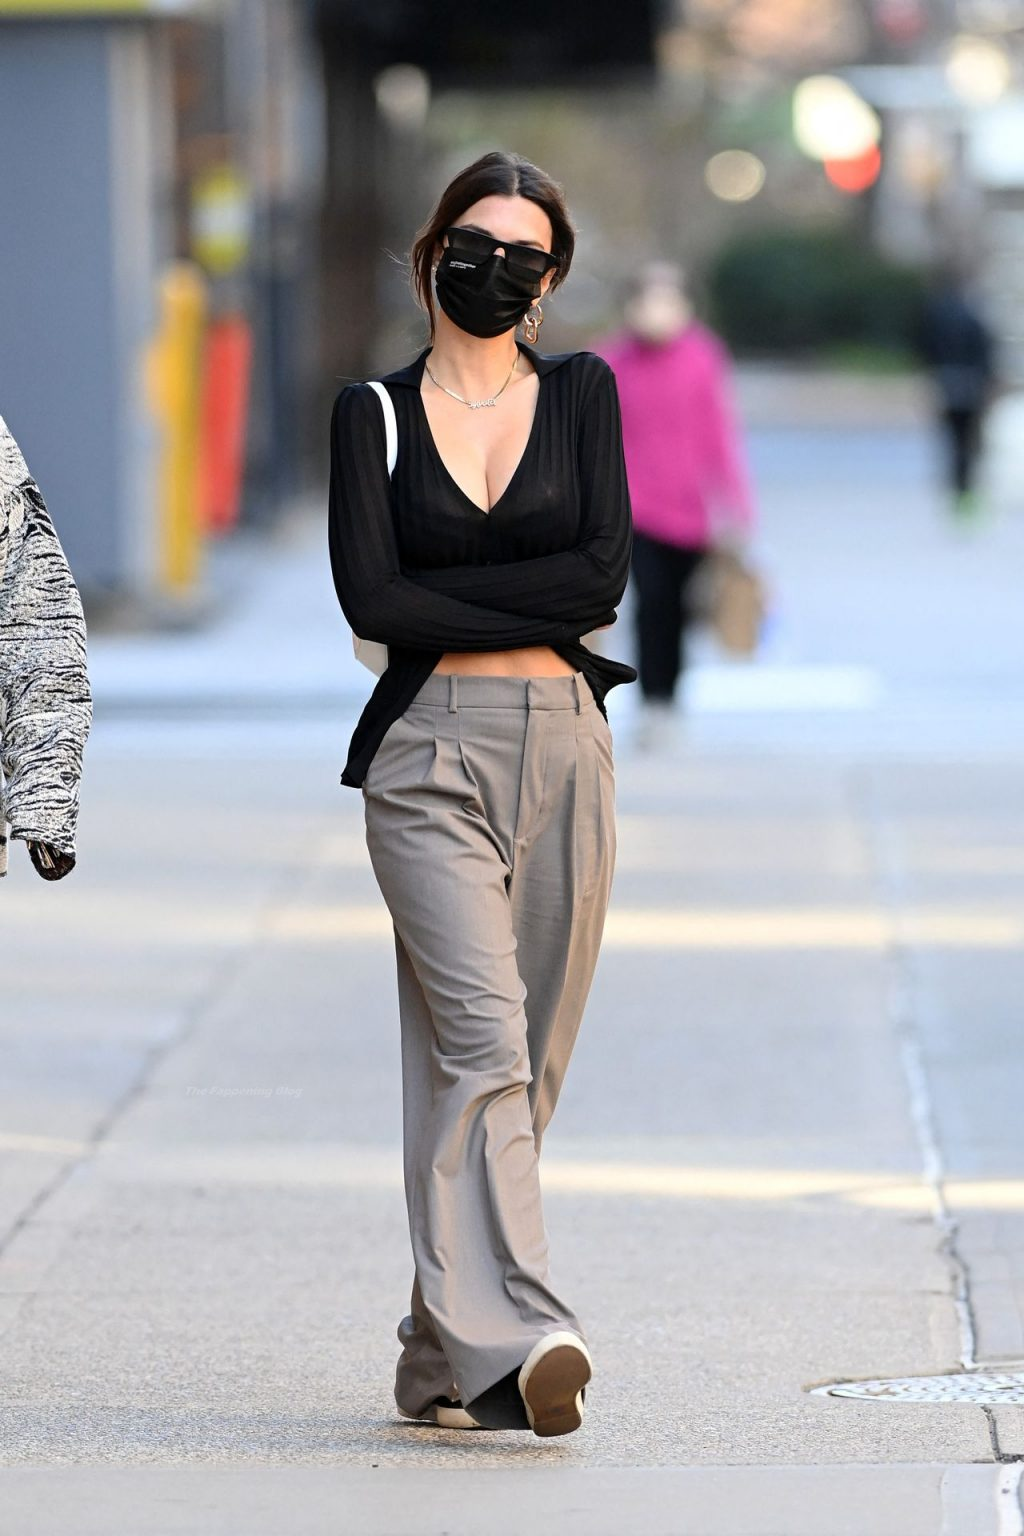 Emily Ratajkowski Looks Svelte Just 3 Weeks After Giving Birth As She Strolls NYC (43 Photos)